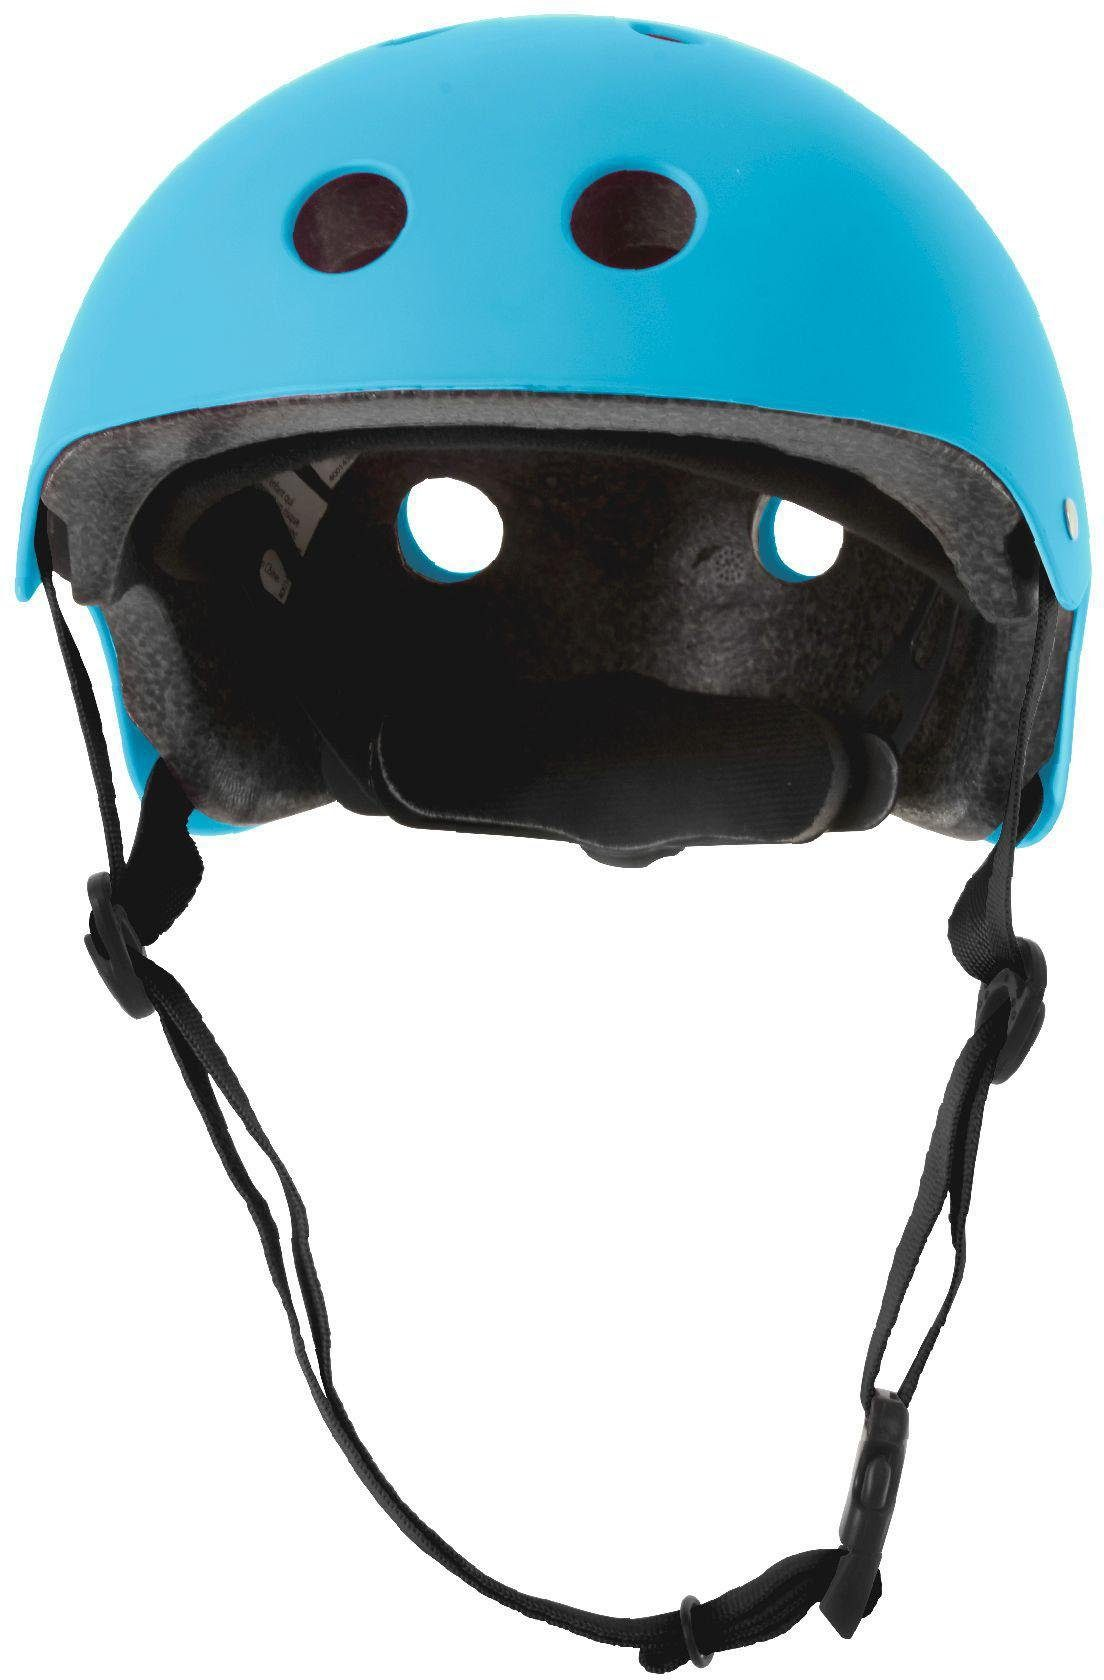 SmarTrike® Helm für Kinder, »Safety Helm blau«